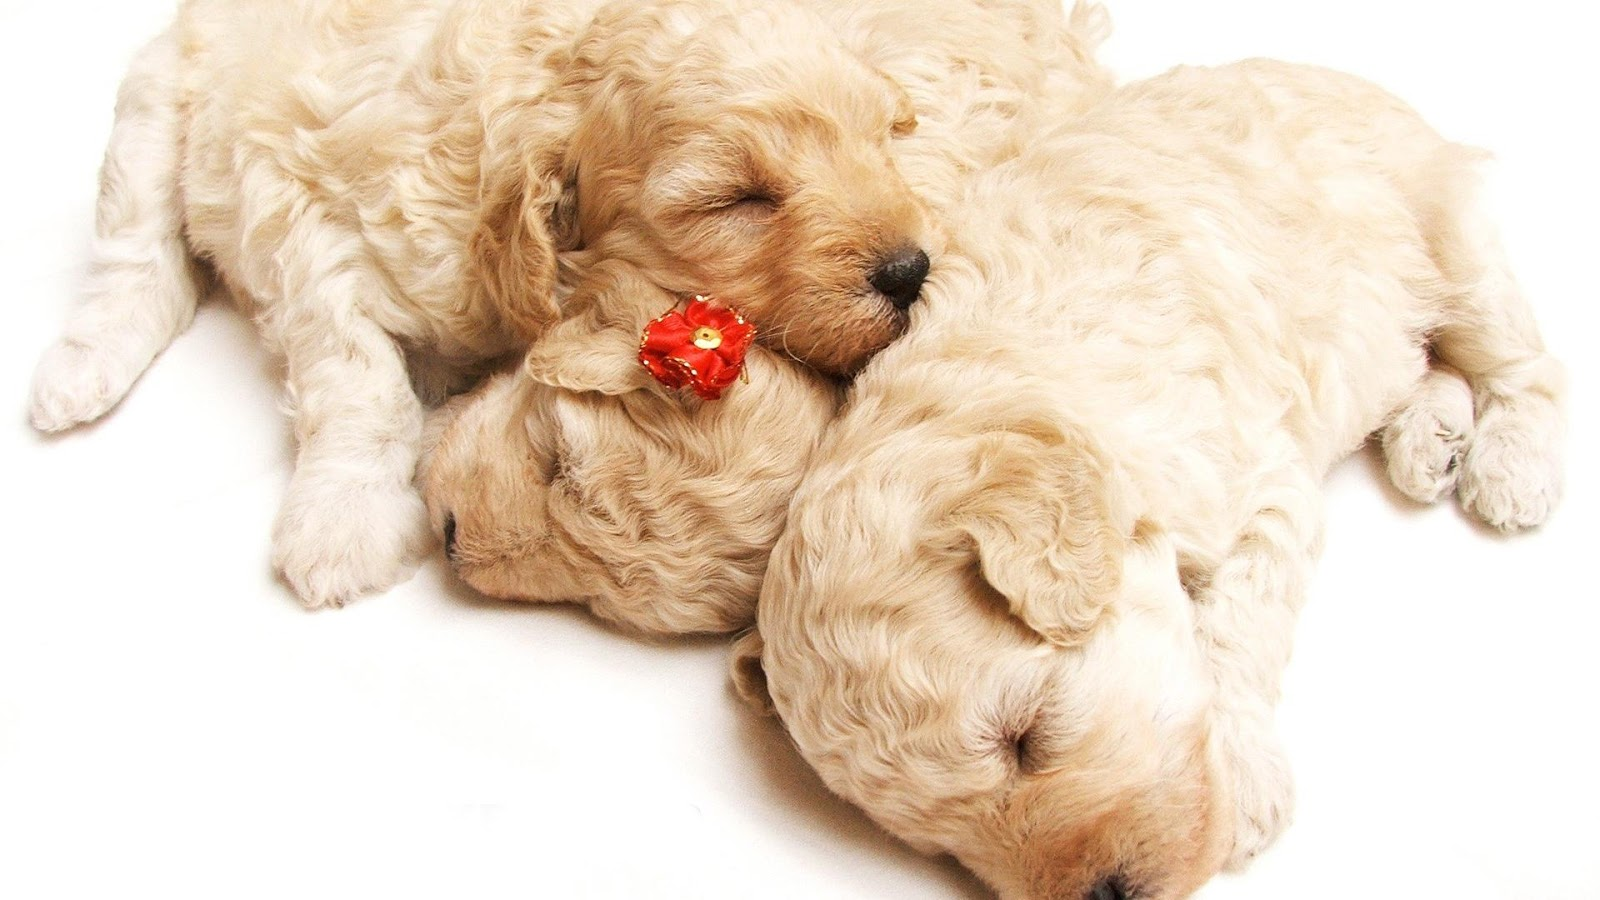 HD Wallpapers: HD PUPPY WALLPAPERS